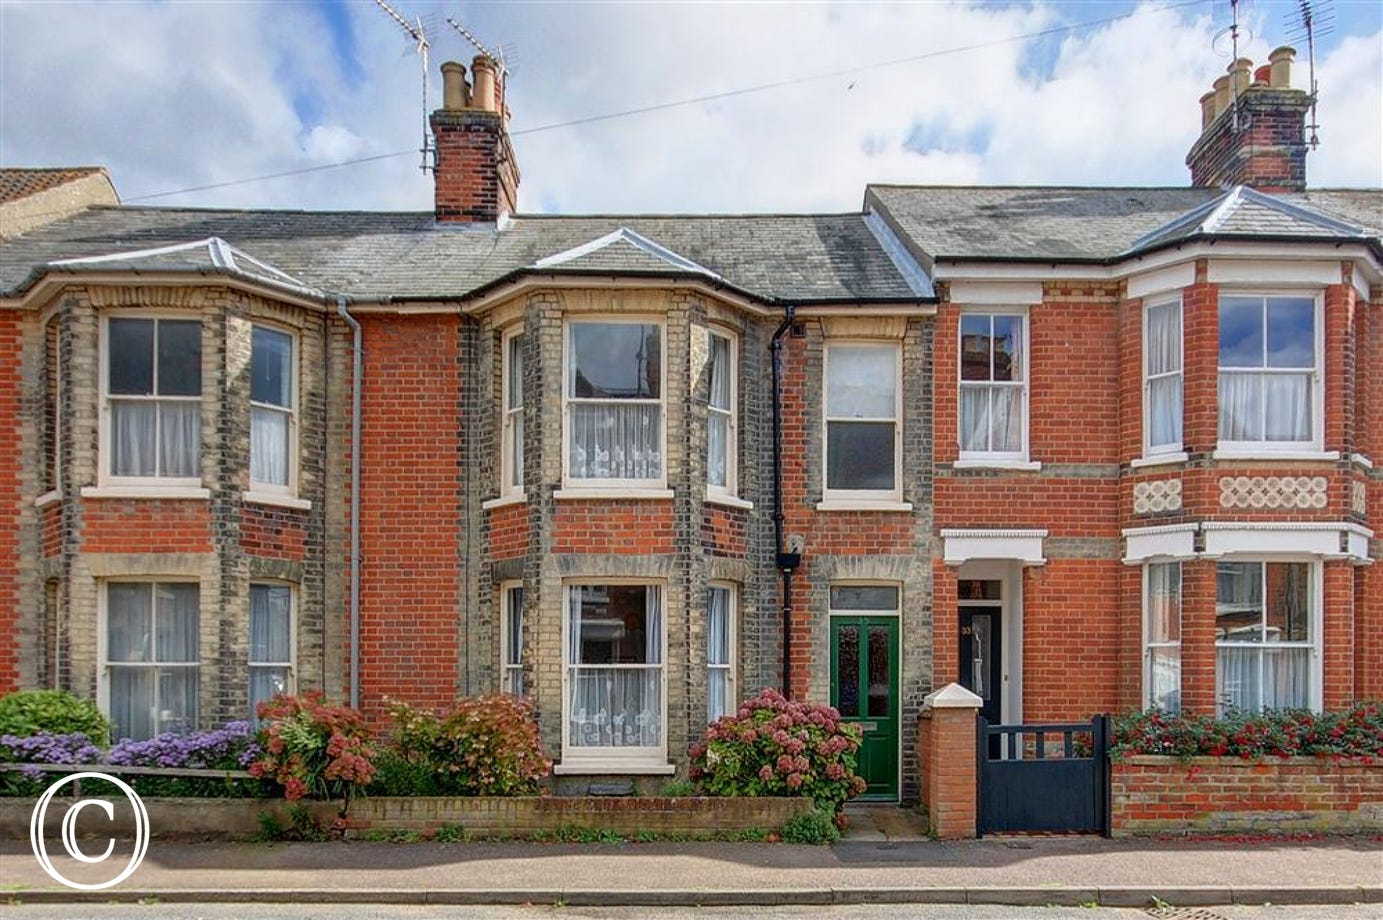 A beautiful, terraced victorian property close to both the beach and high street.